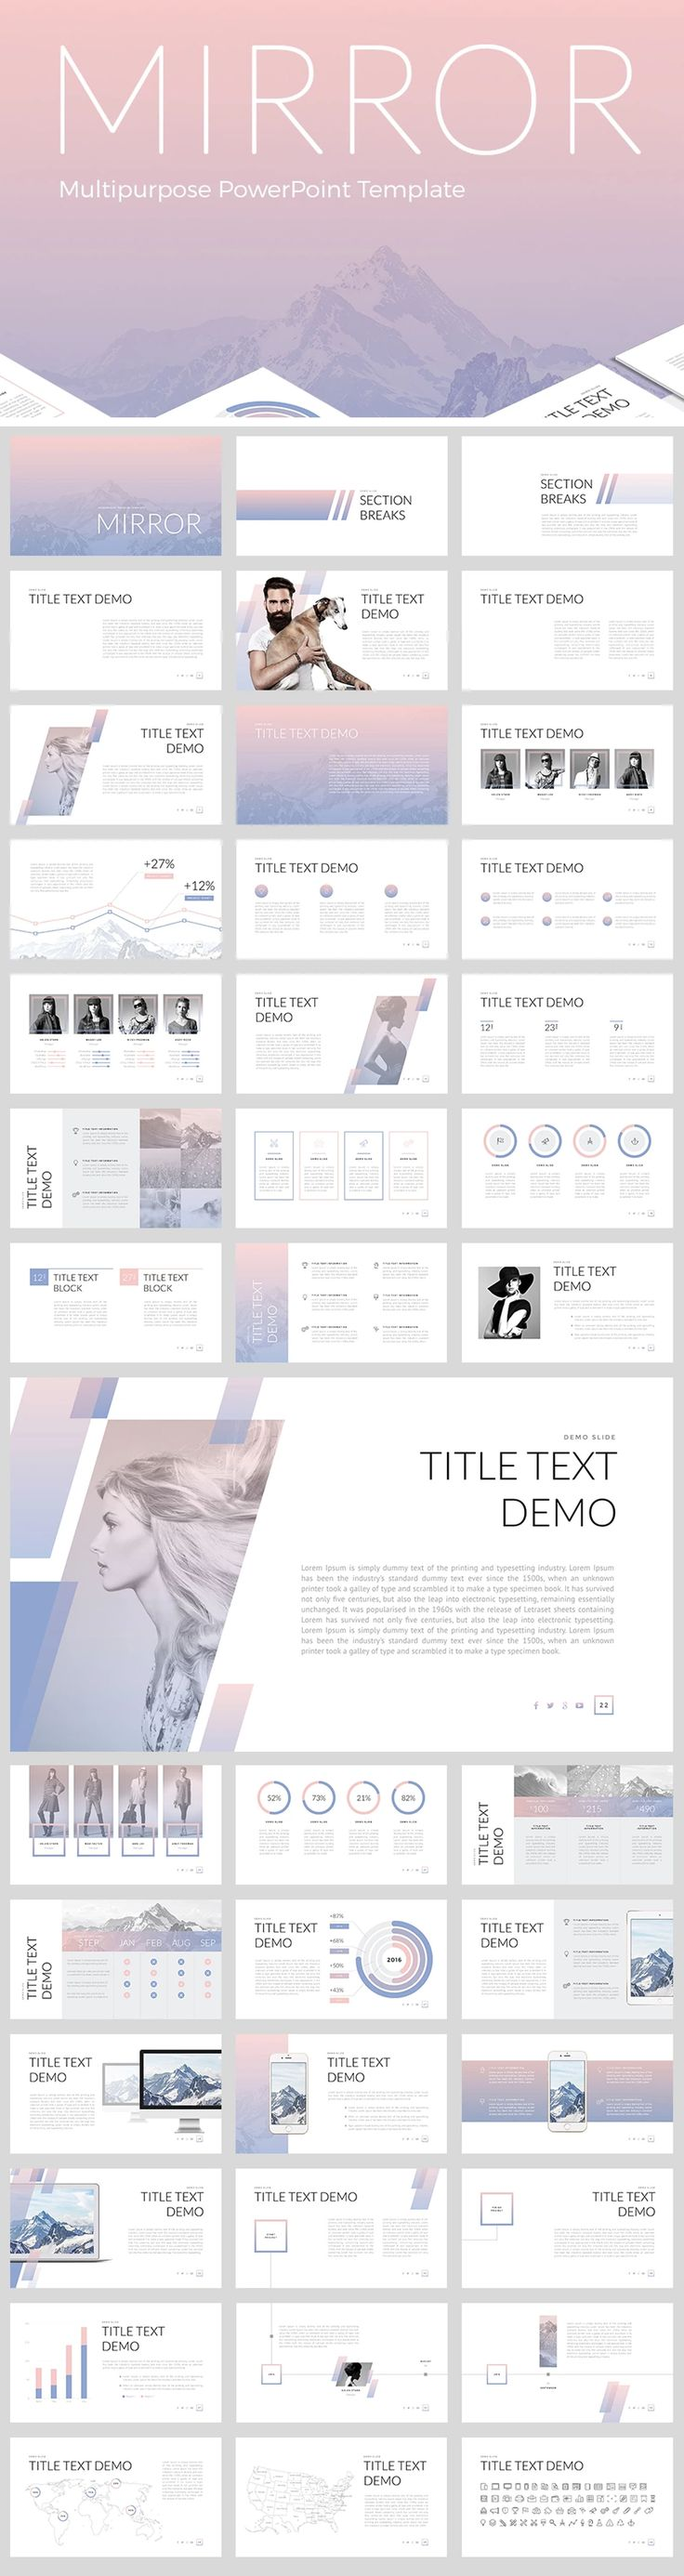 121 best business powerpoint templates images on pinterest mirror powerpoint template accmission Images